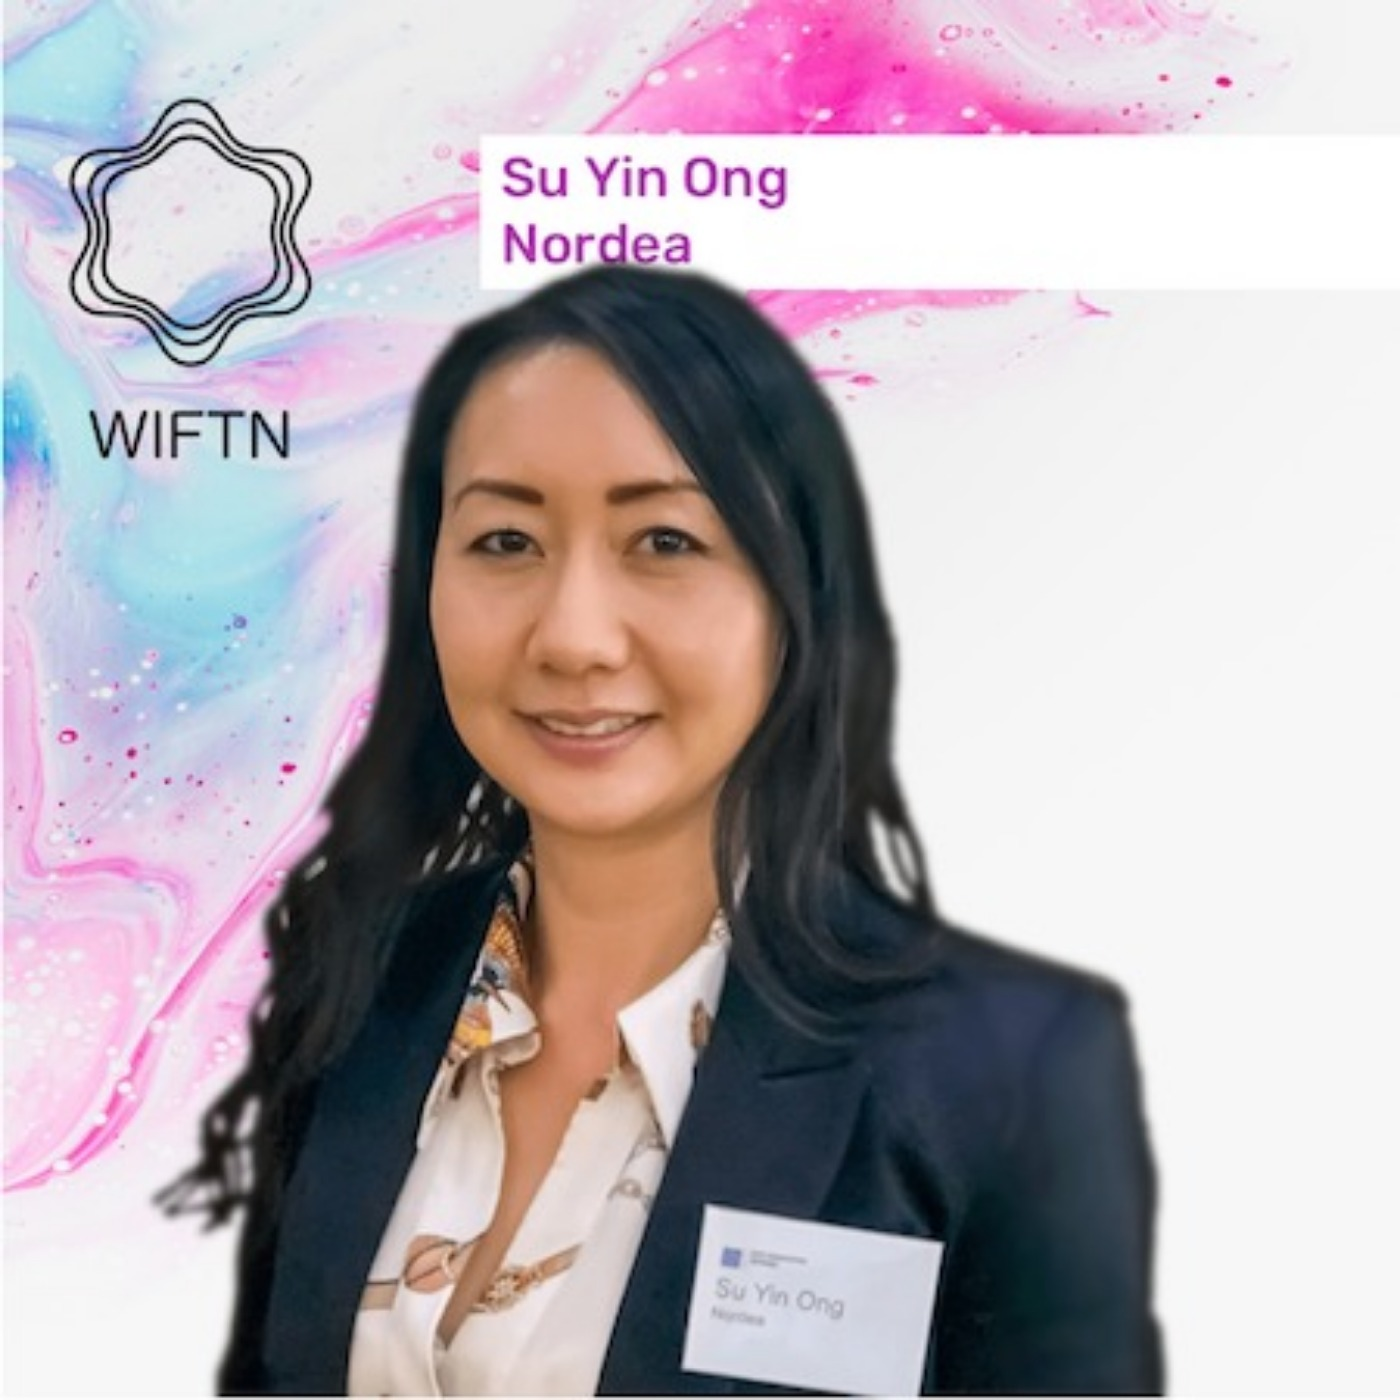 Episode 3: Fintech M&A's Partnerships from a Incumbent Perspective - with Su Yin Ong